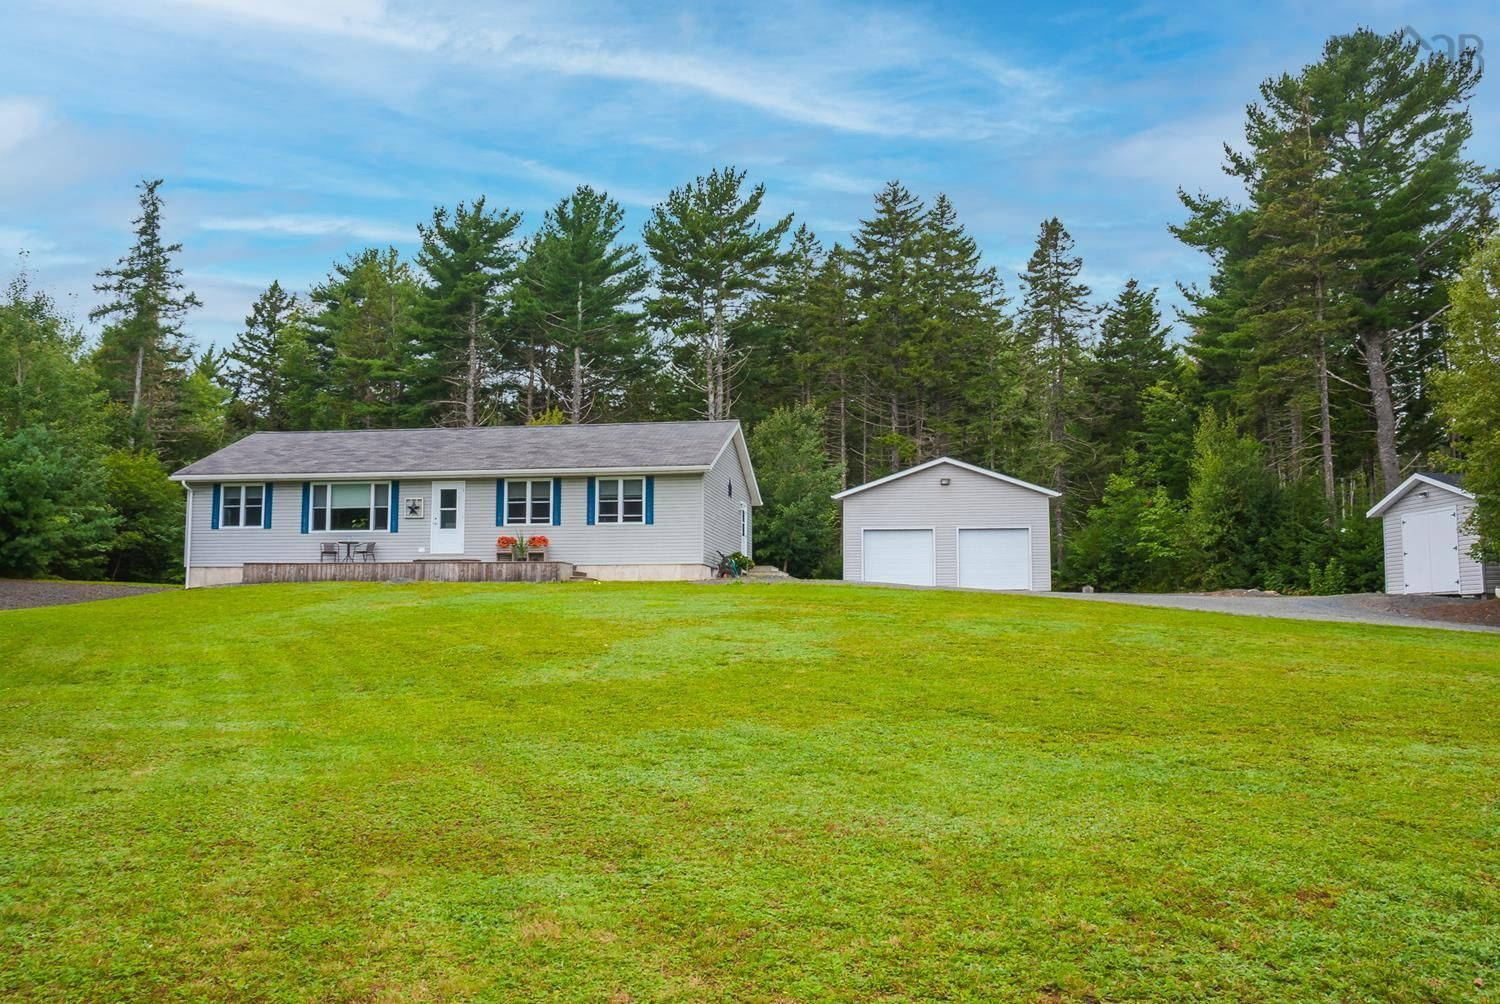 Main Photo: 11369 Highway 3 in Centre: 405-Lunenburg County Residential for sale (South Shore)  : MLS®# 202123535